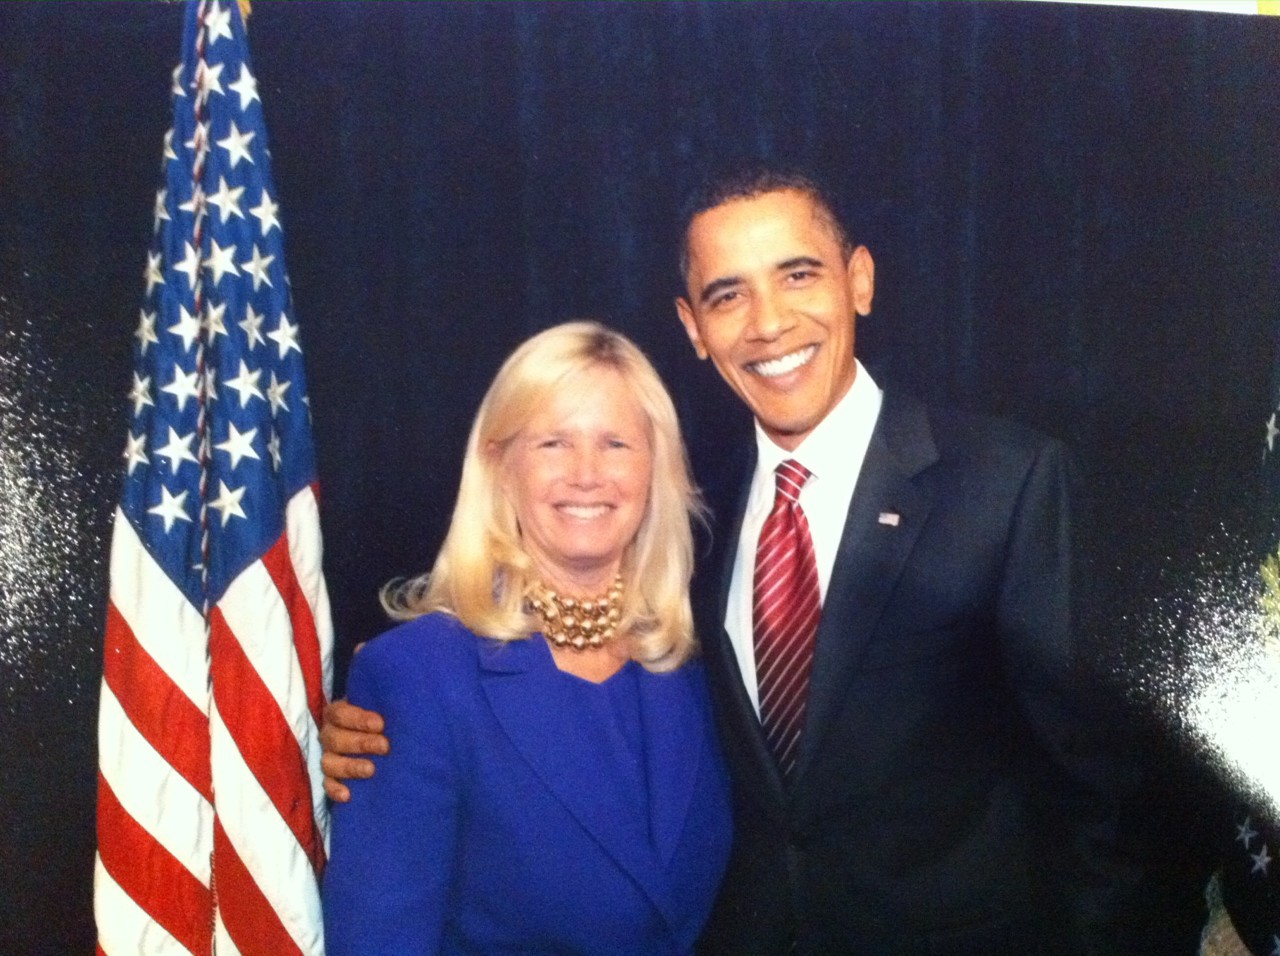 Susan Blumenthal with President Barack Obama